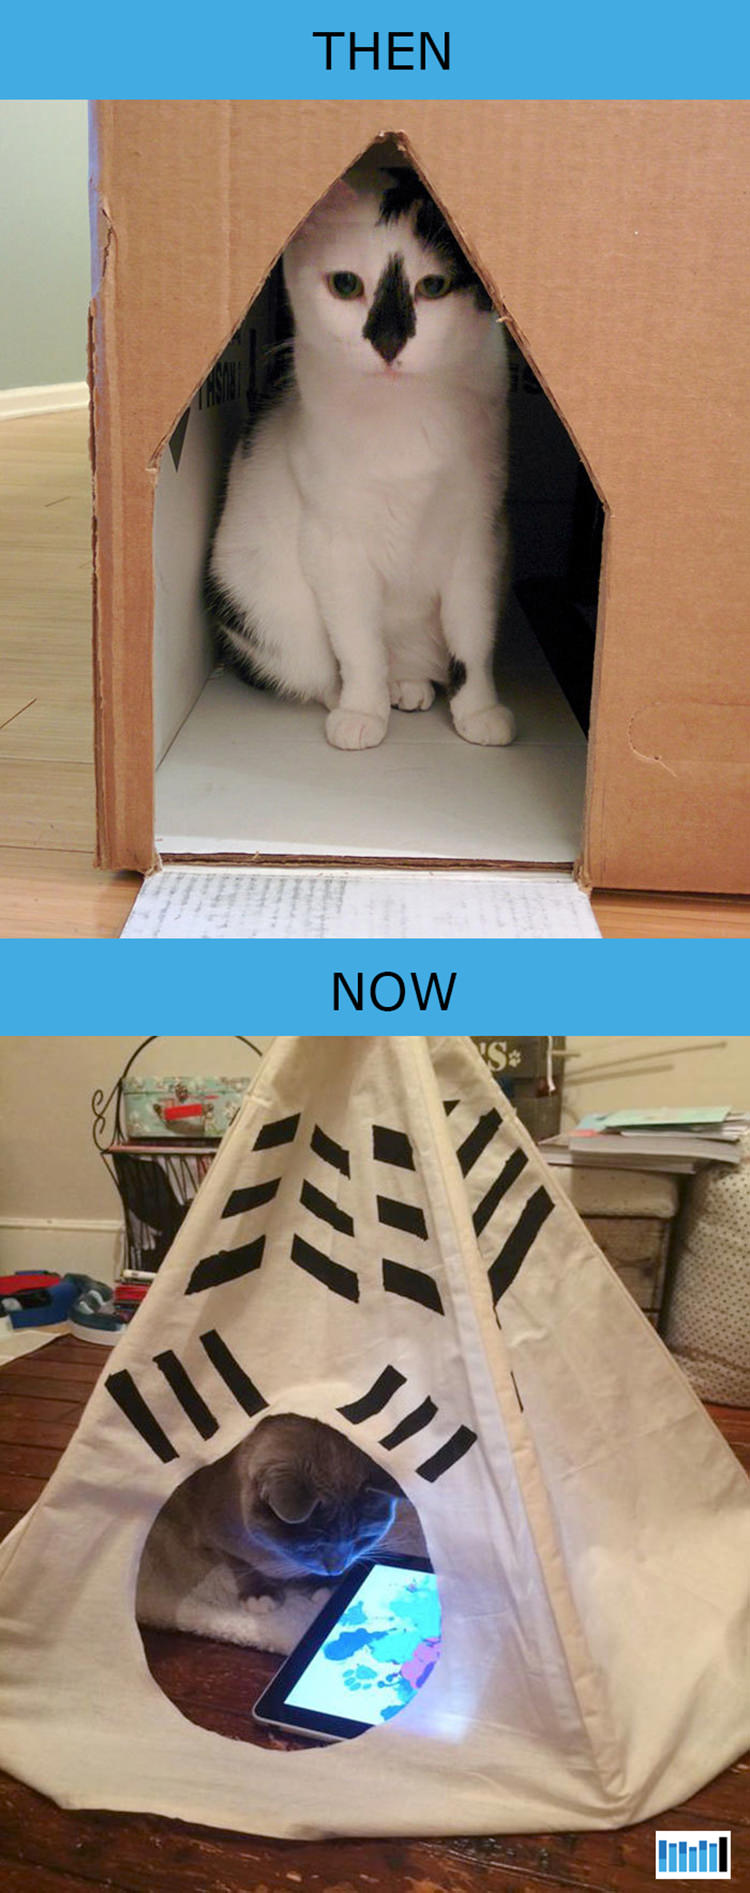 cats-then-now-funny-technology-13